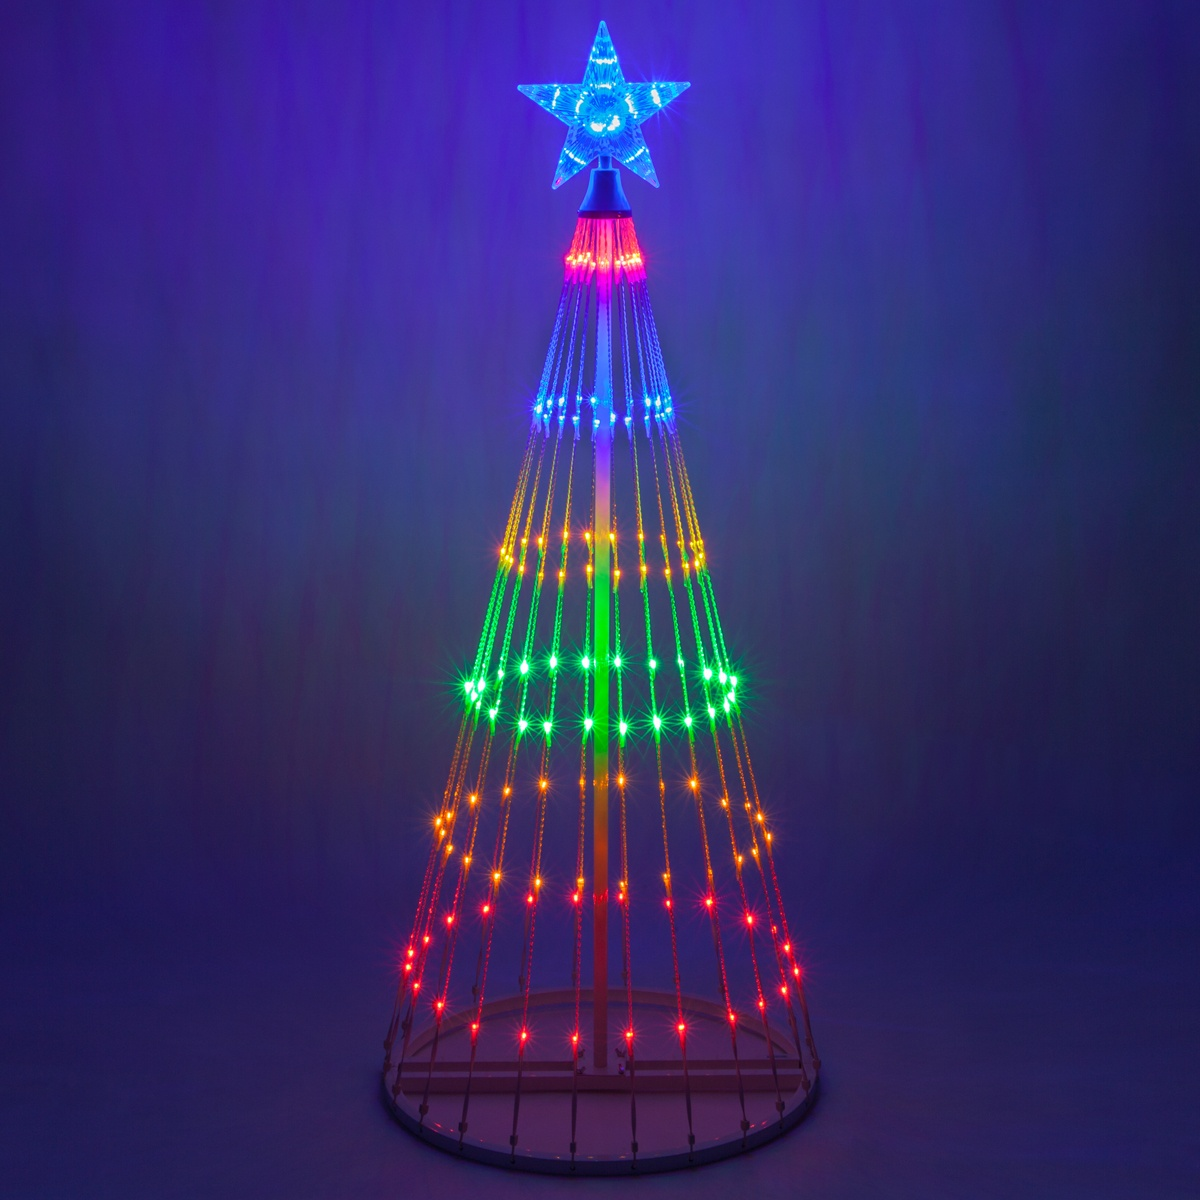 Wintergreen Lighting 4ft Multicolor Outdoor Christmas Light Show Cone Tree 14 Function Led Outdoor Christmas Decoration Walmart Com Walmart Com